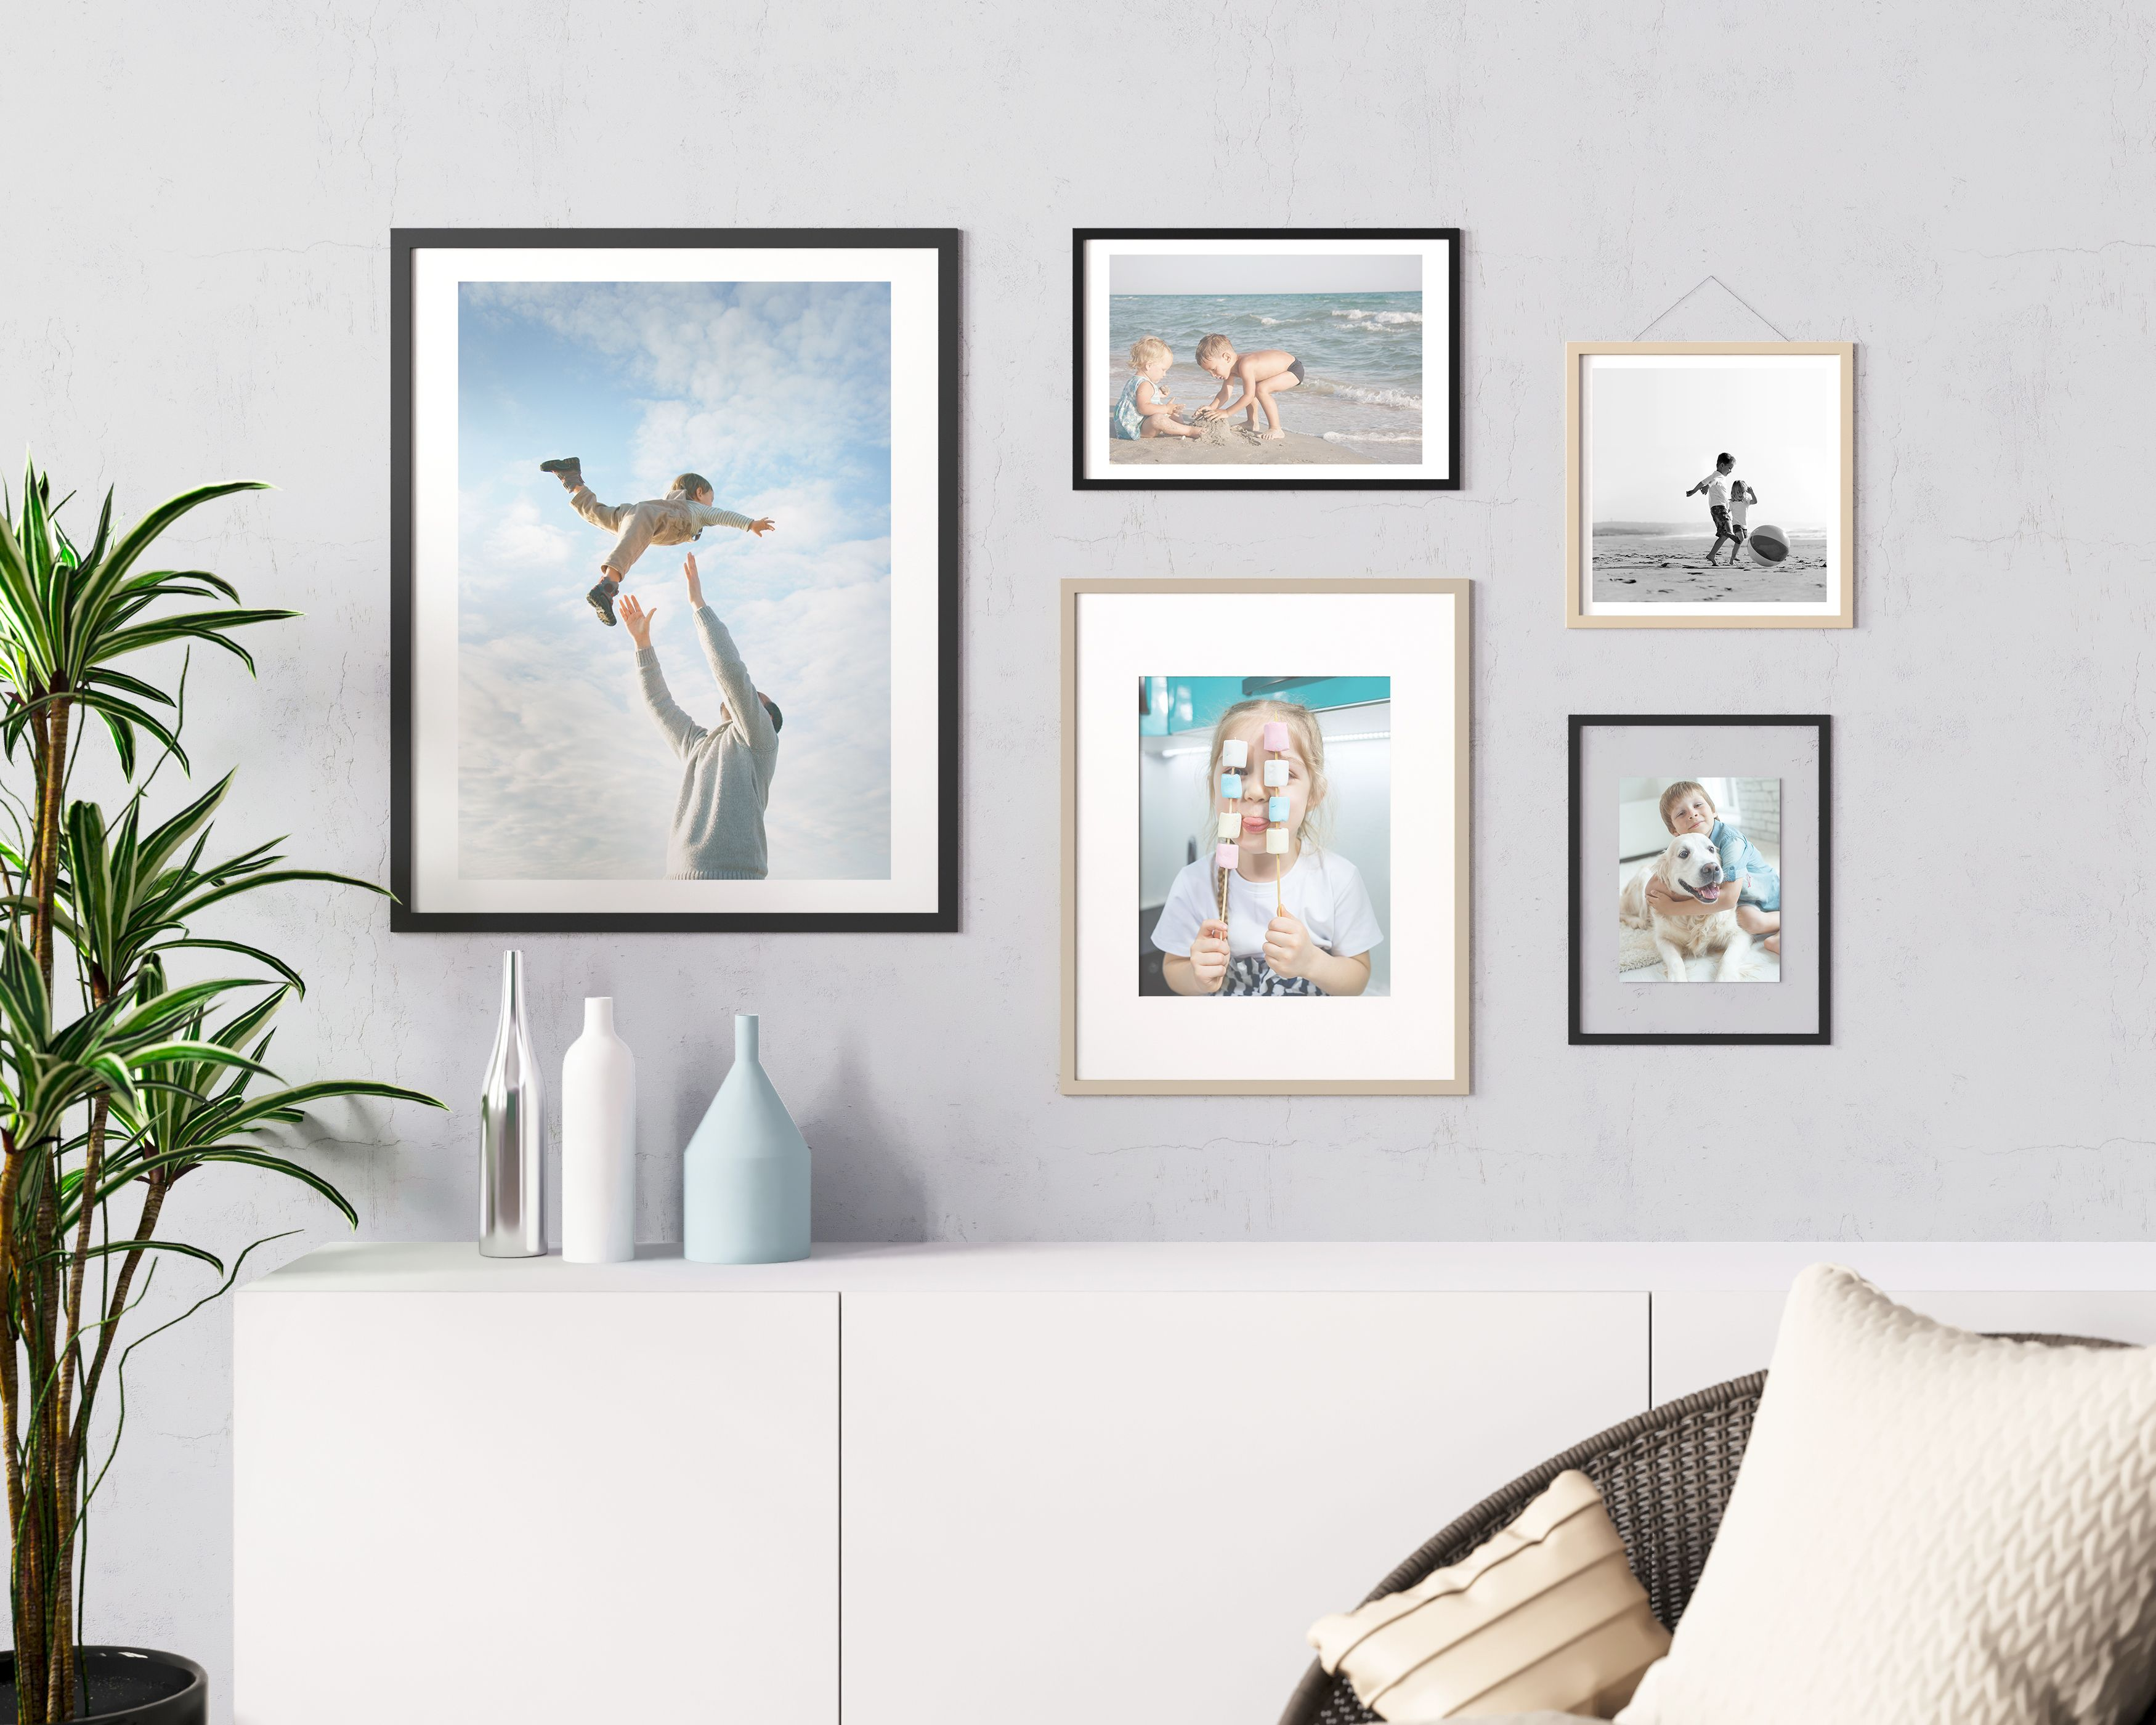 Order individual photo prints in up to 21 different sizes using Mimeo Photos